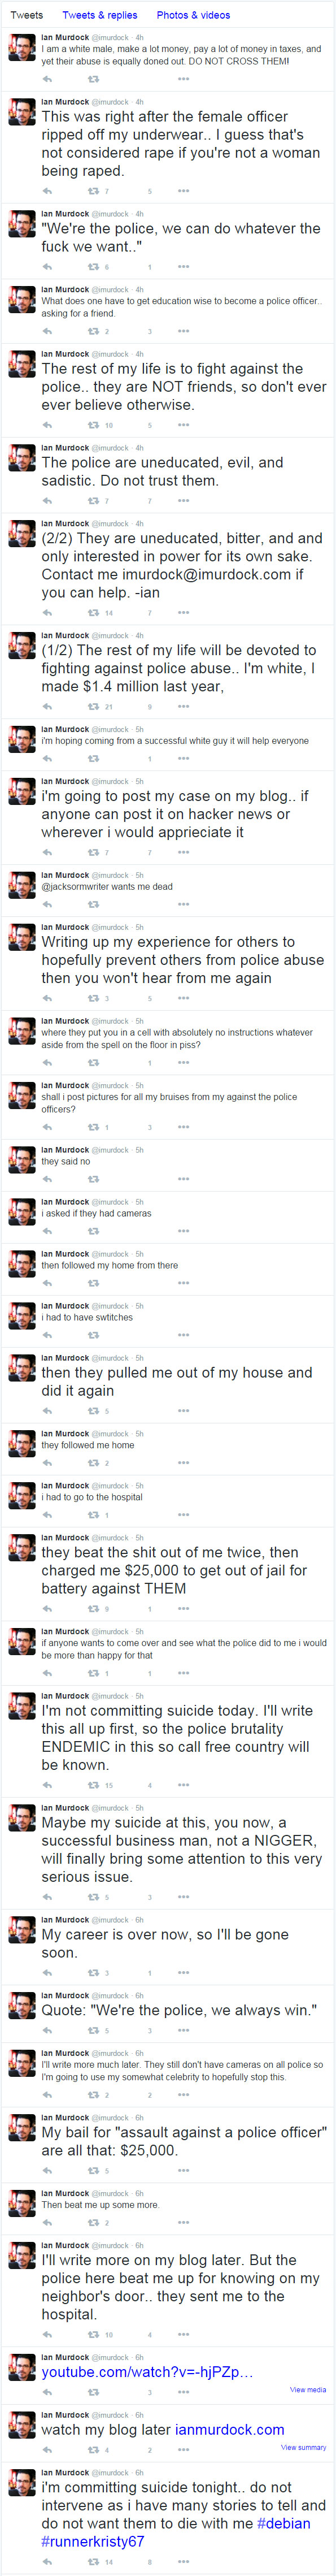 Image of tweets from Ian Twitter account which has been deleted since his death.